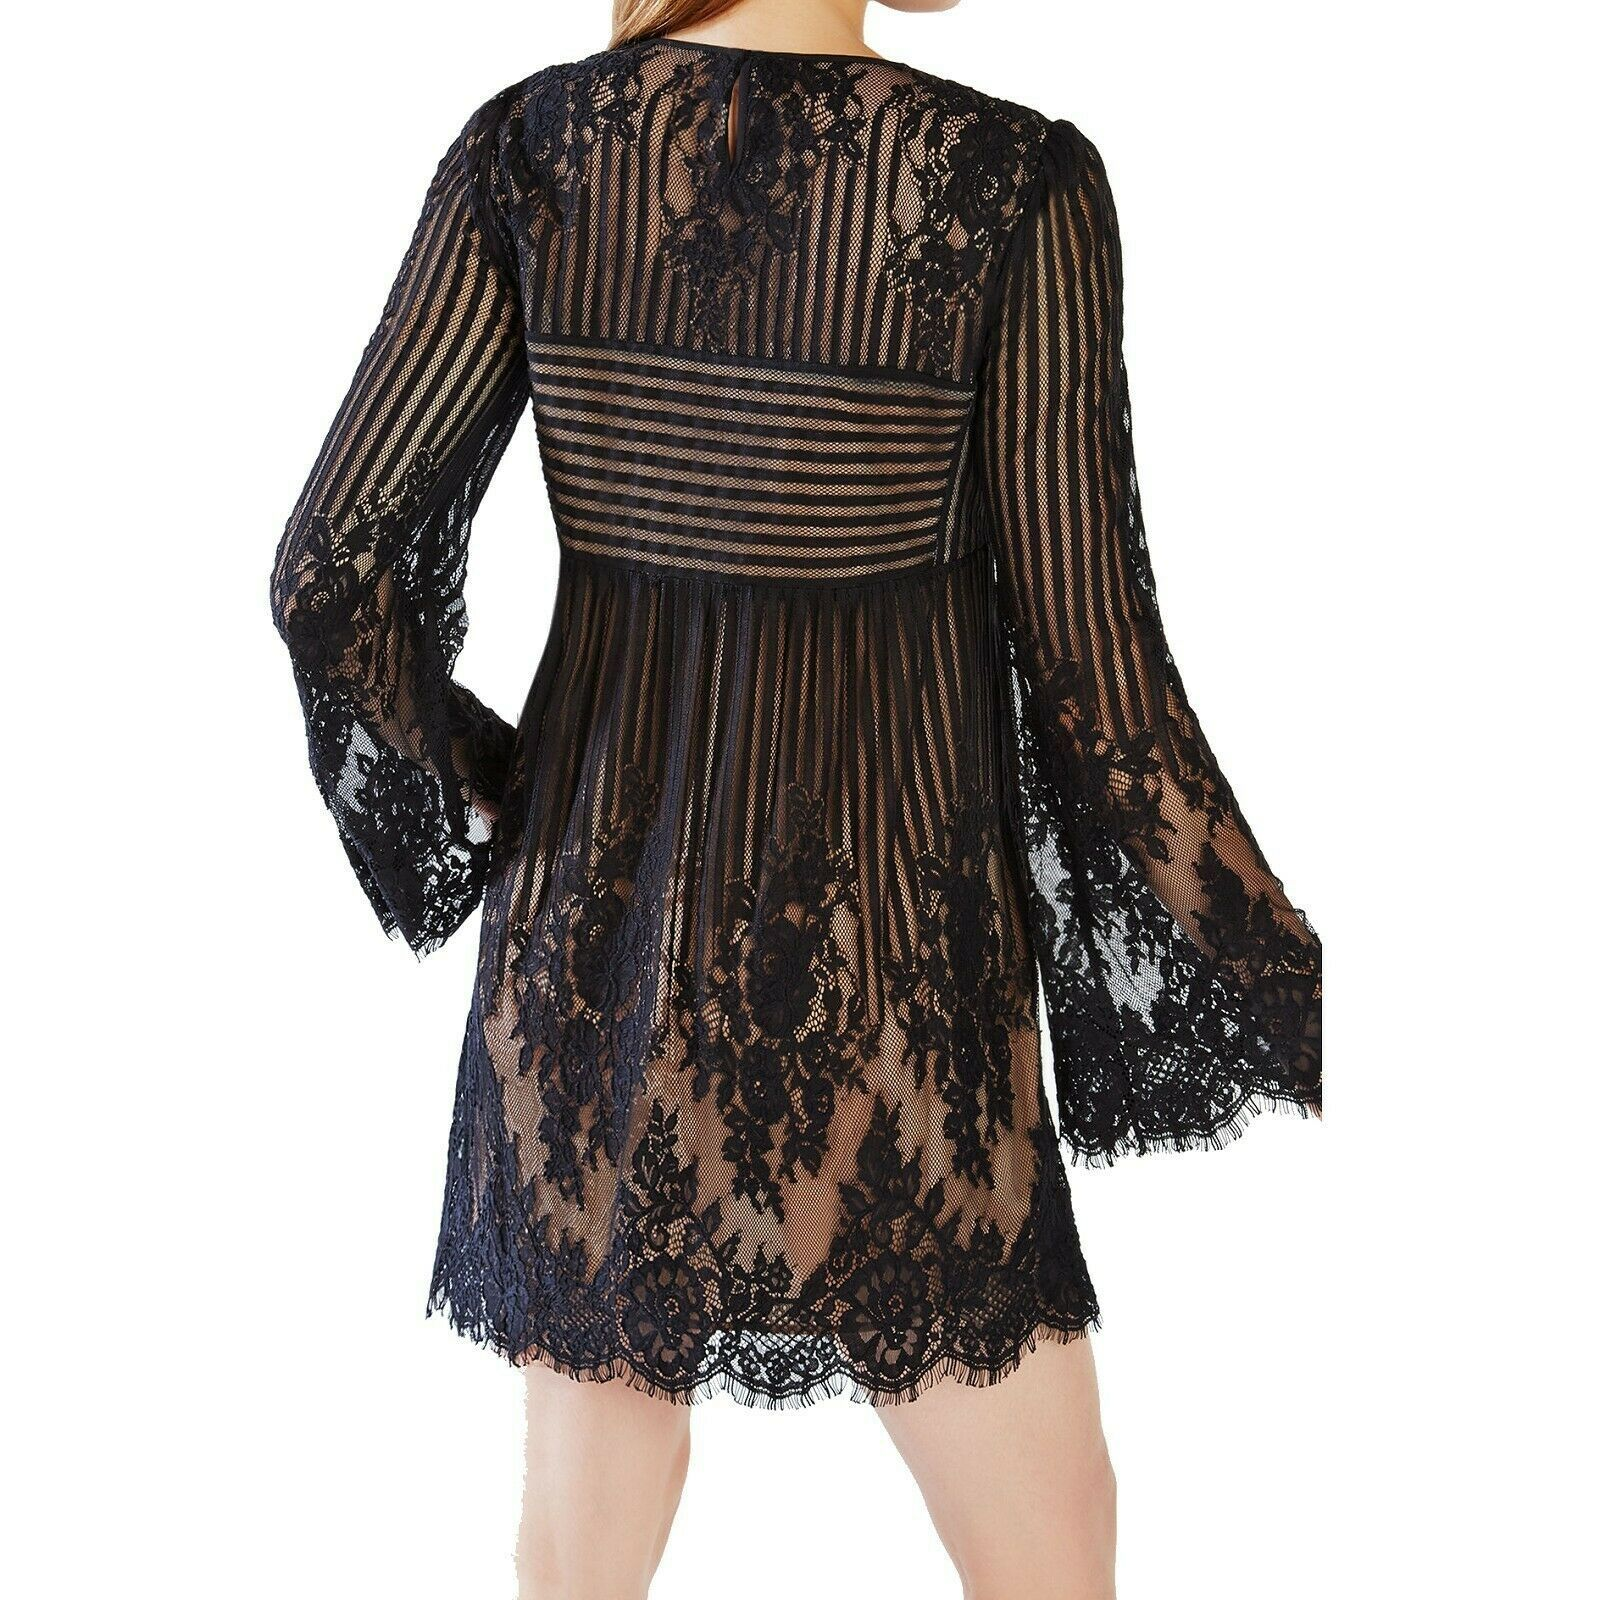 BCBG MAXAZRIA Black Luann Floral Stripe Lace Bell Sleeve Babydoll Mini Dress XS